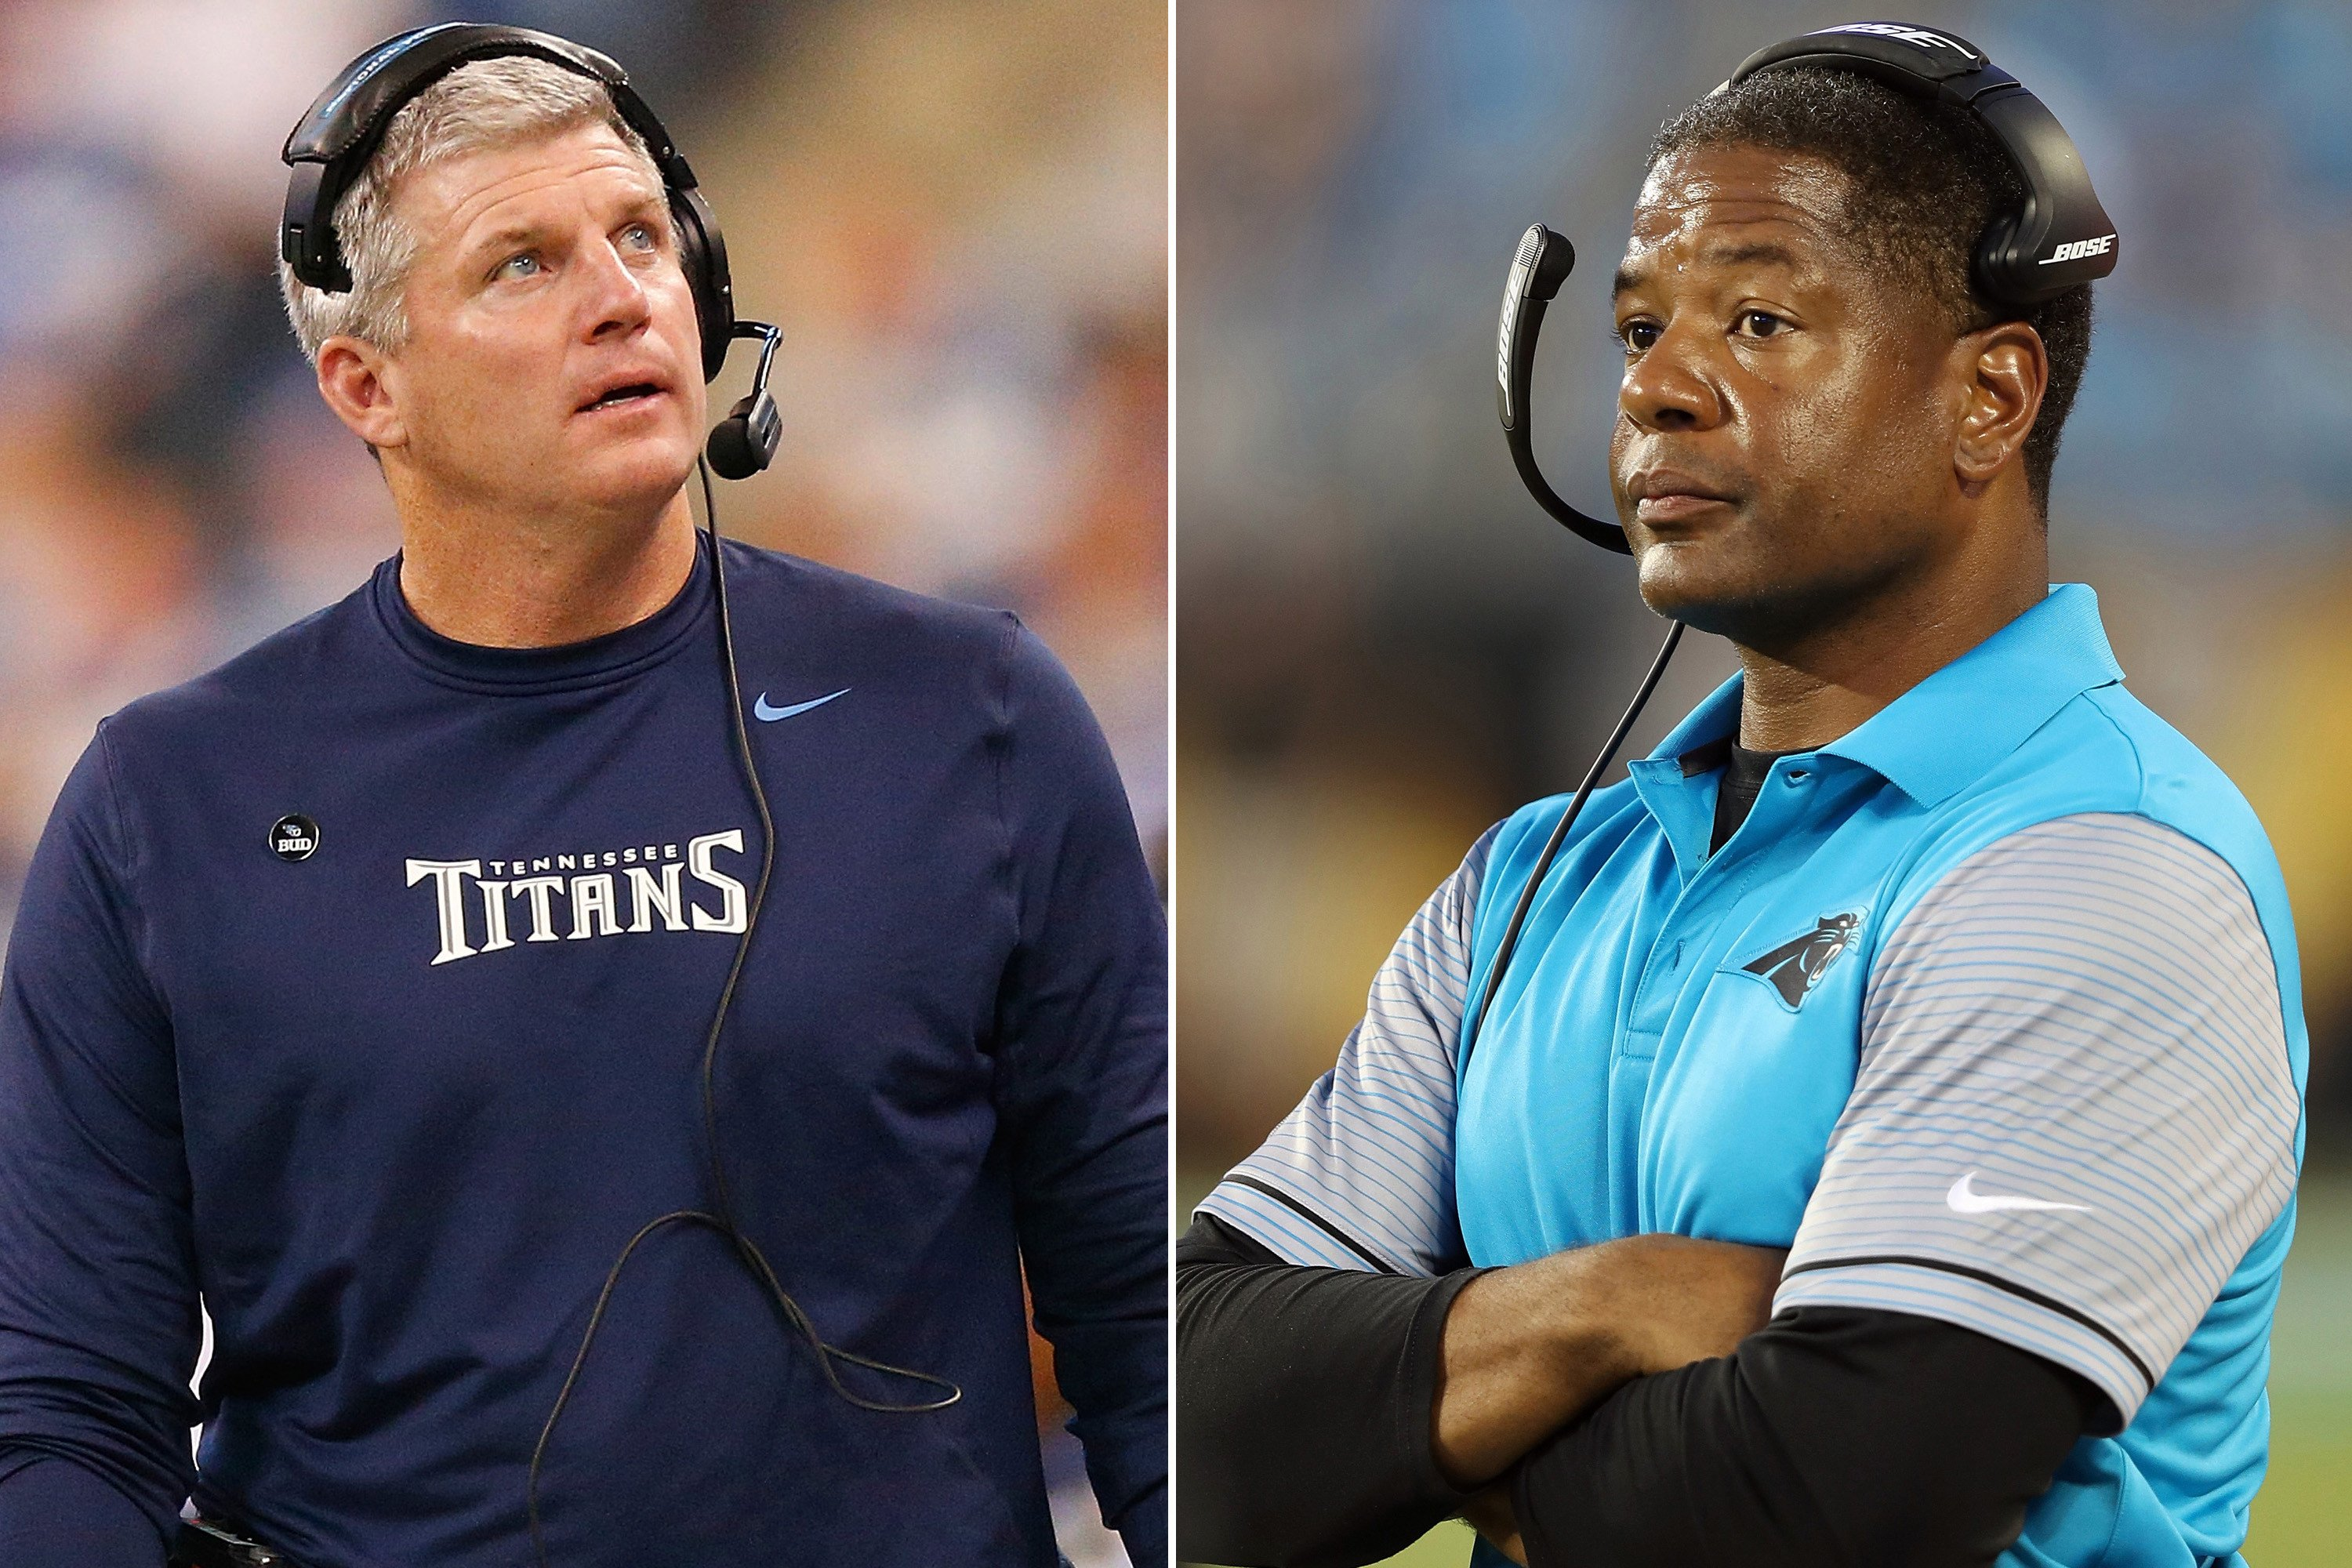 Two fallback options if Giants miss out on top coach choices